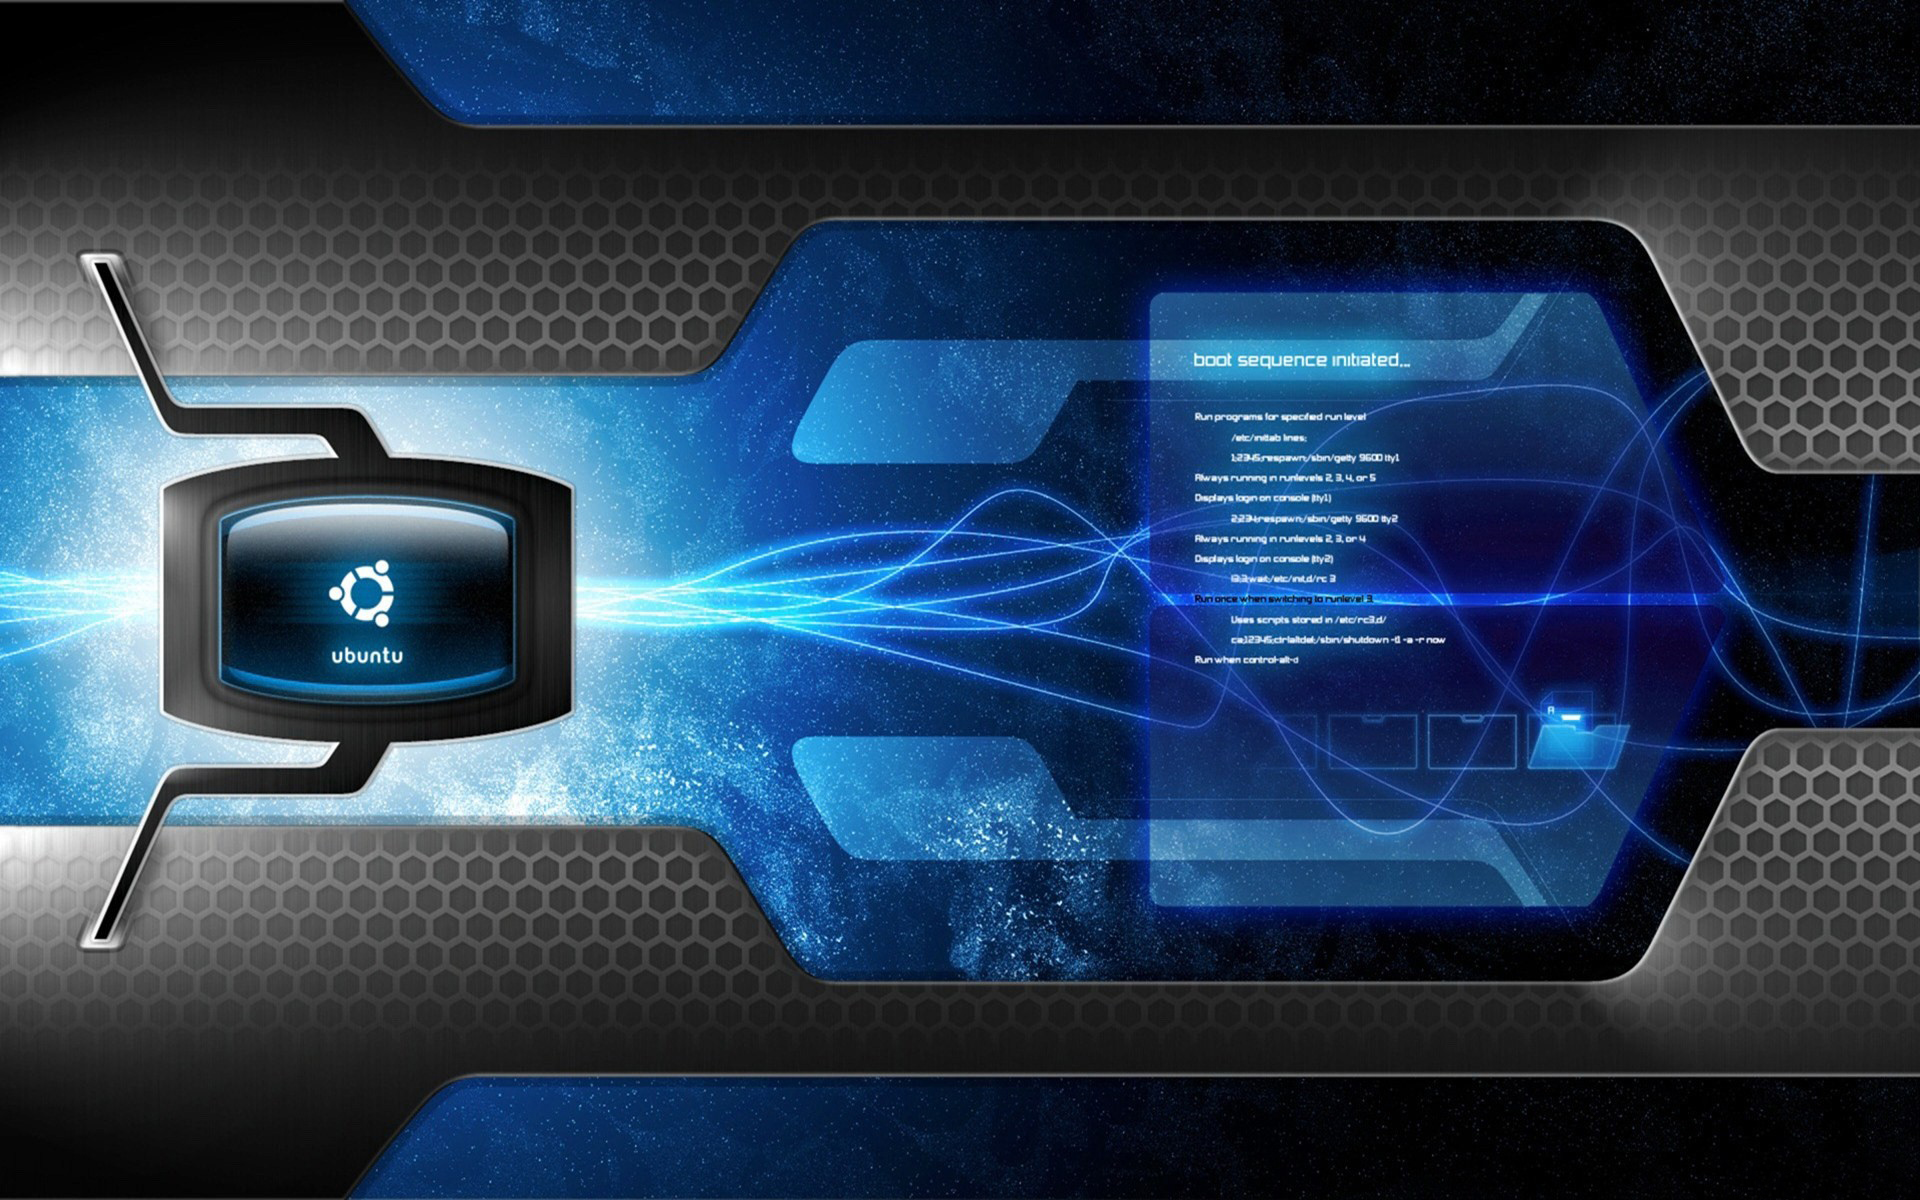 Technology hd wallpapers - Technology background images hd ...